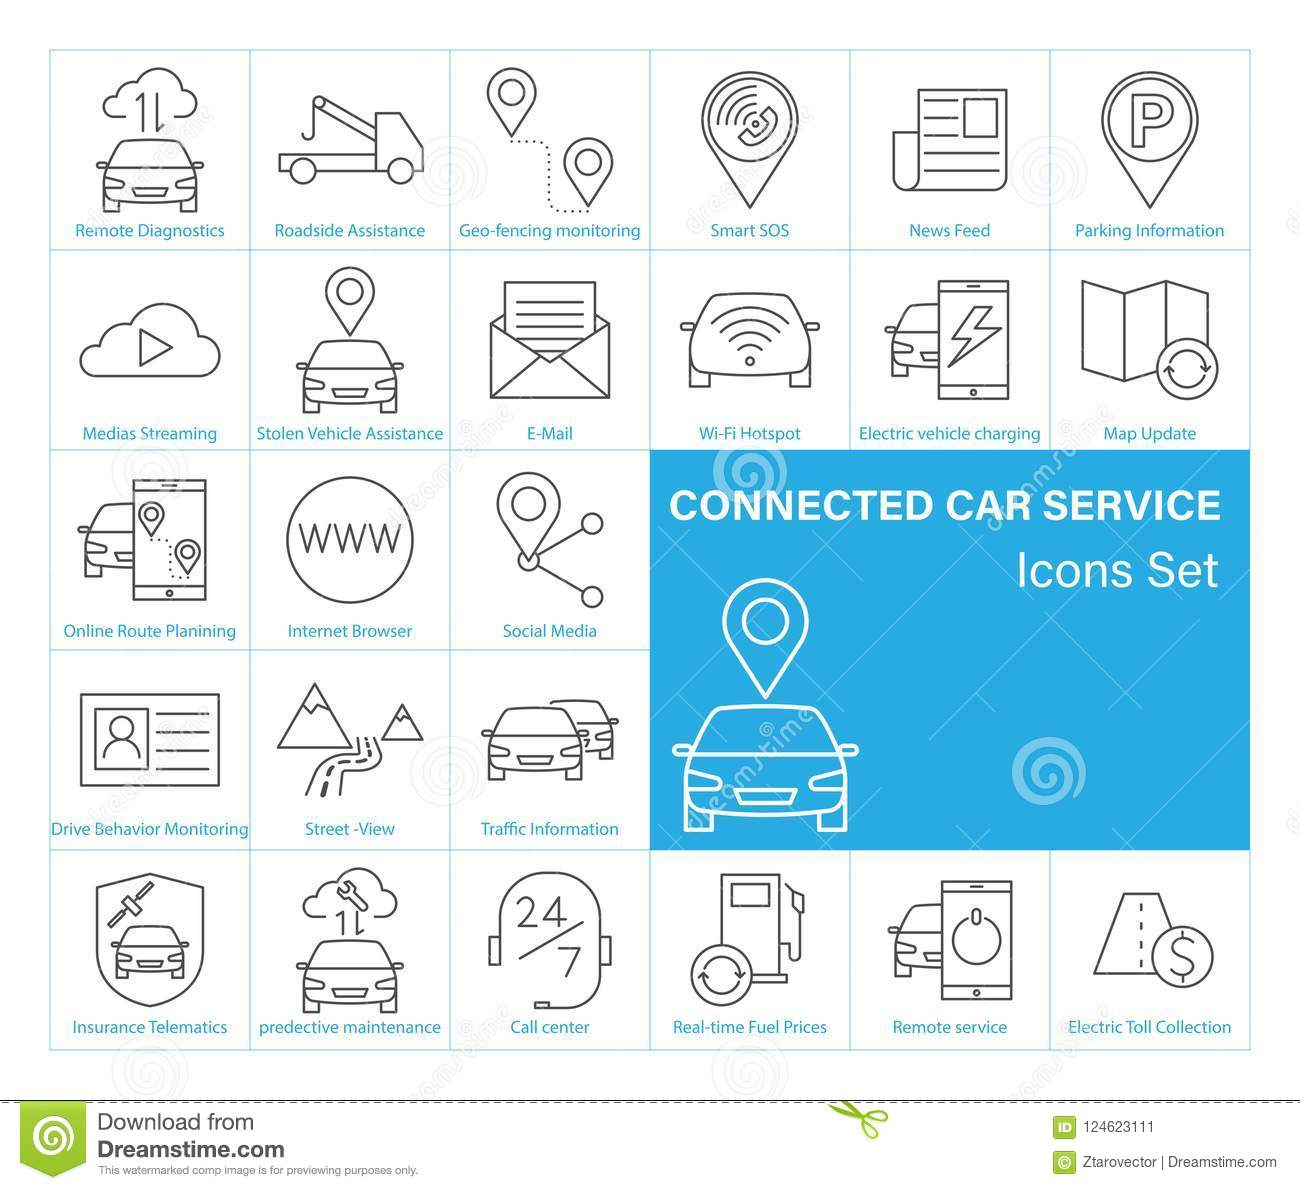 Connected Car Service Icons Set Stock Vector Illustration Of Electrical Symbol Icon Isolated On A White Background